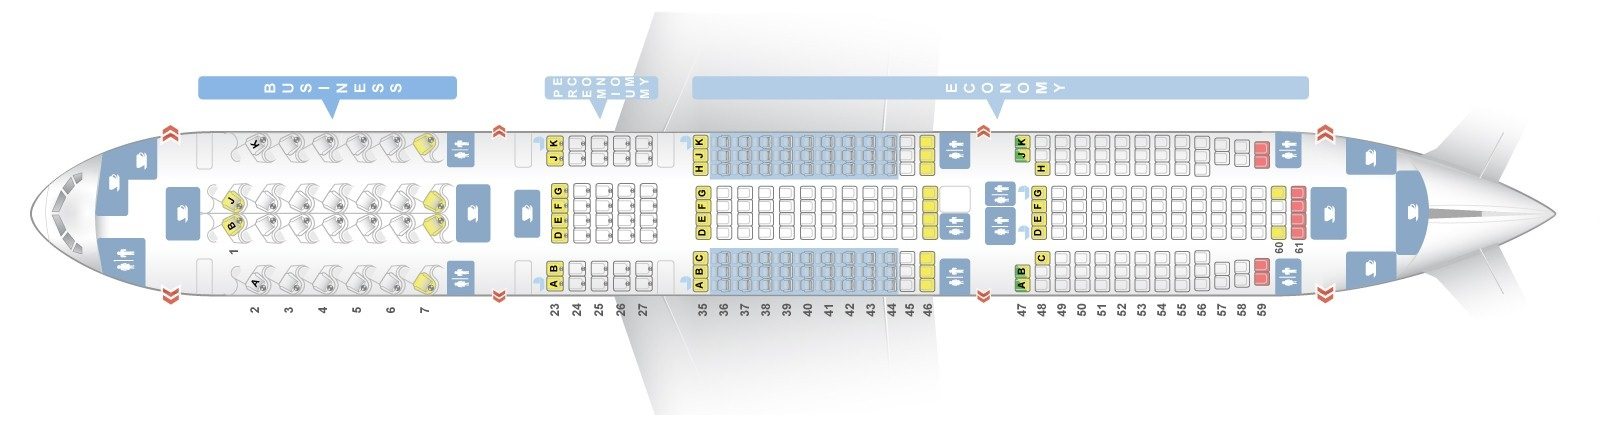 Seat map Boeing 777-200 Air New Zealand. Best seats in the plane